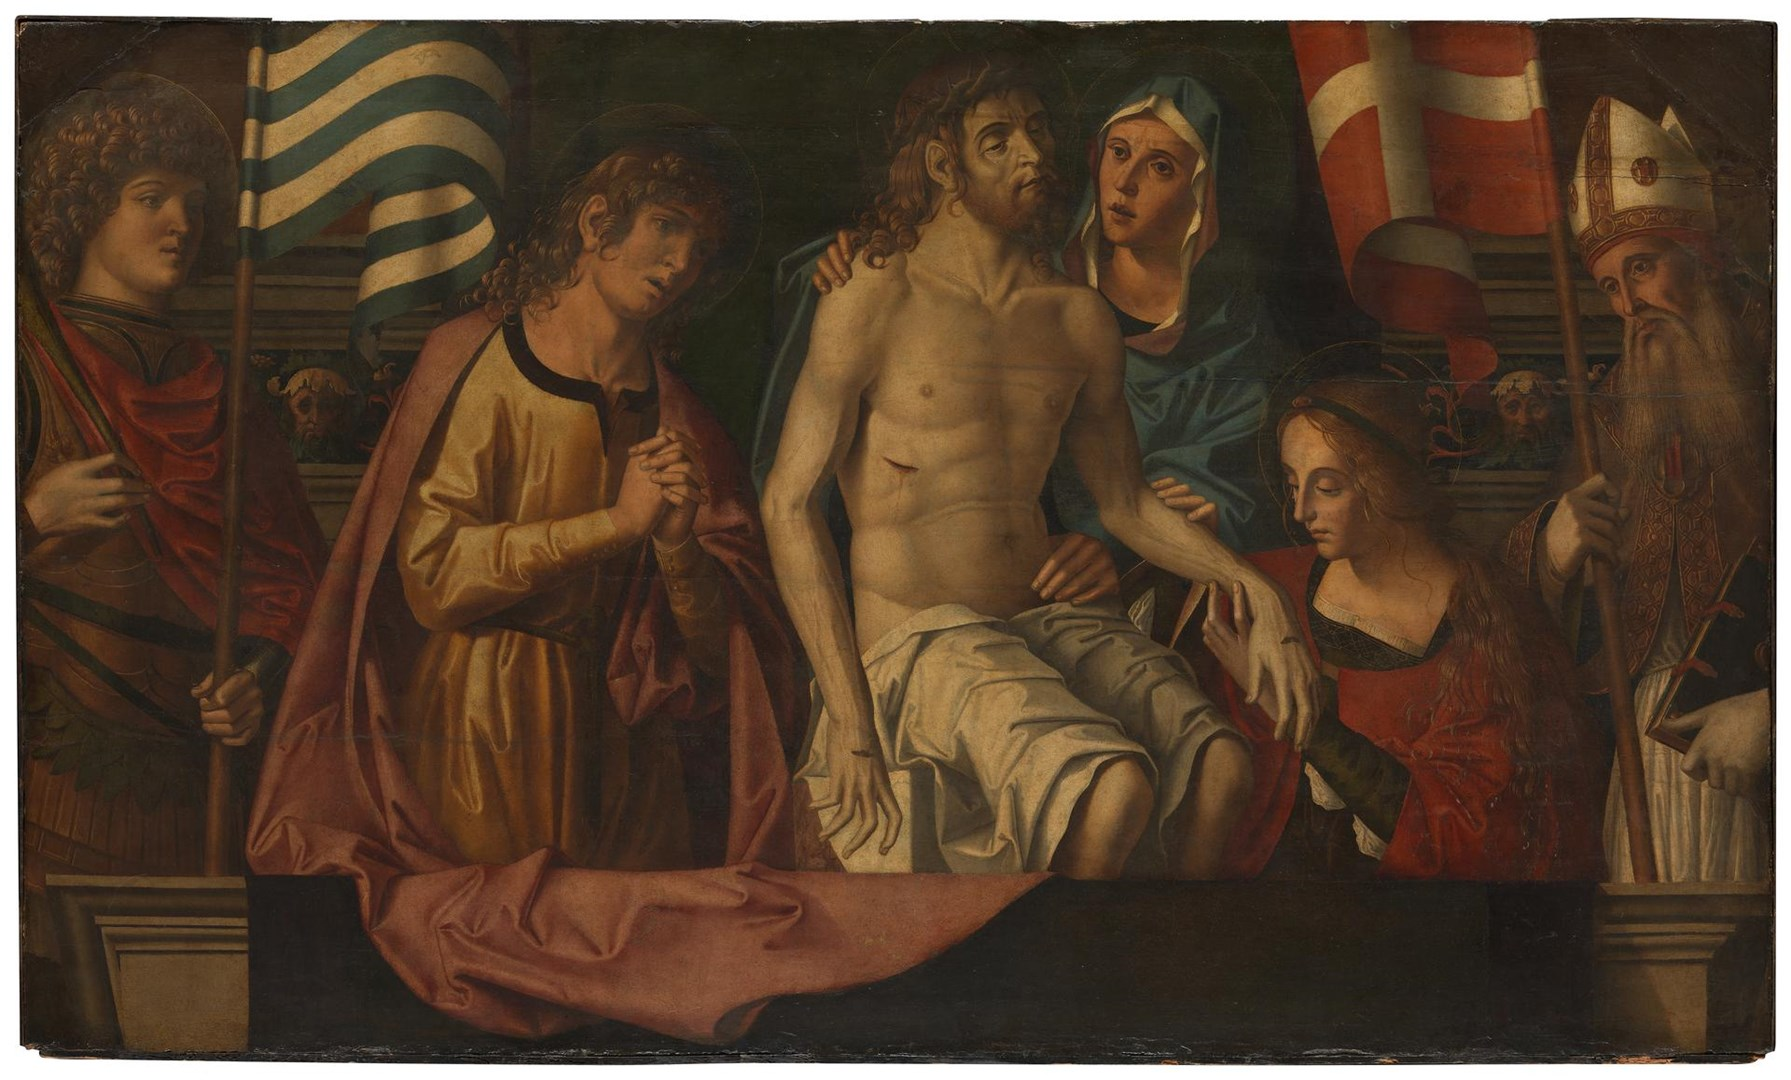 The Lamentation over the Dead Christ by Marco Palmezzano